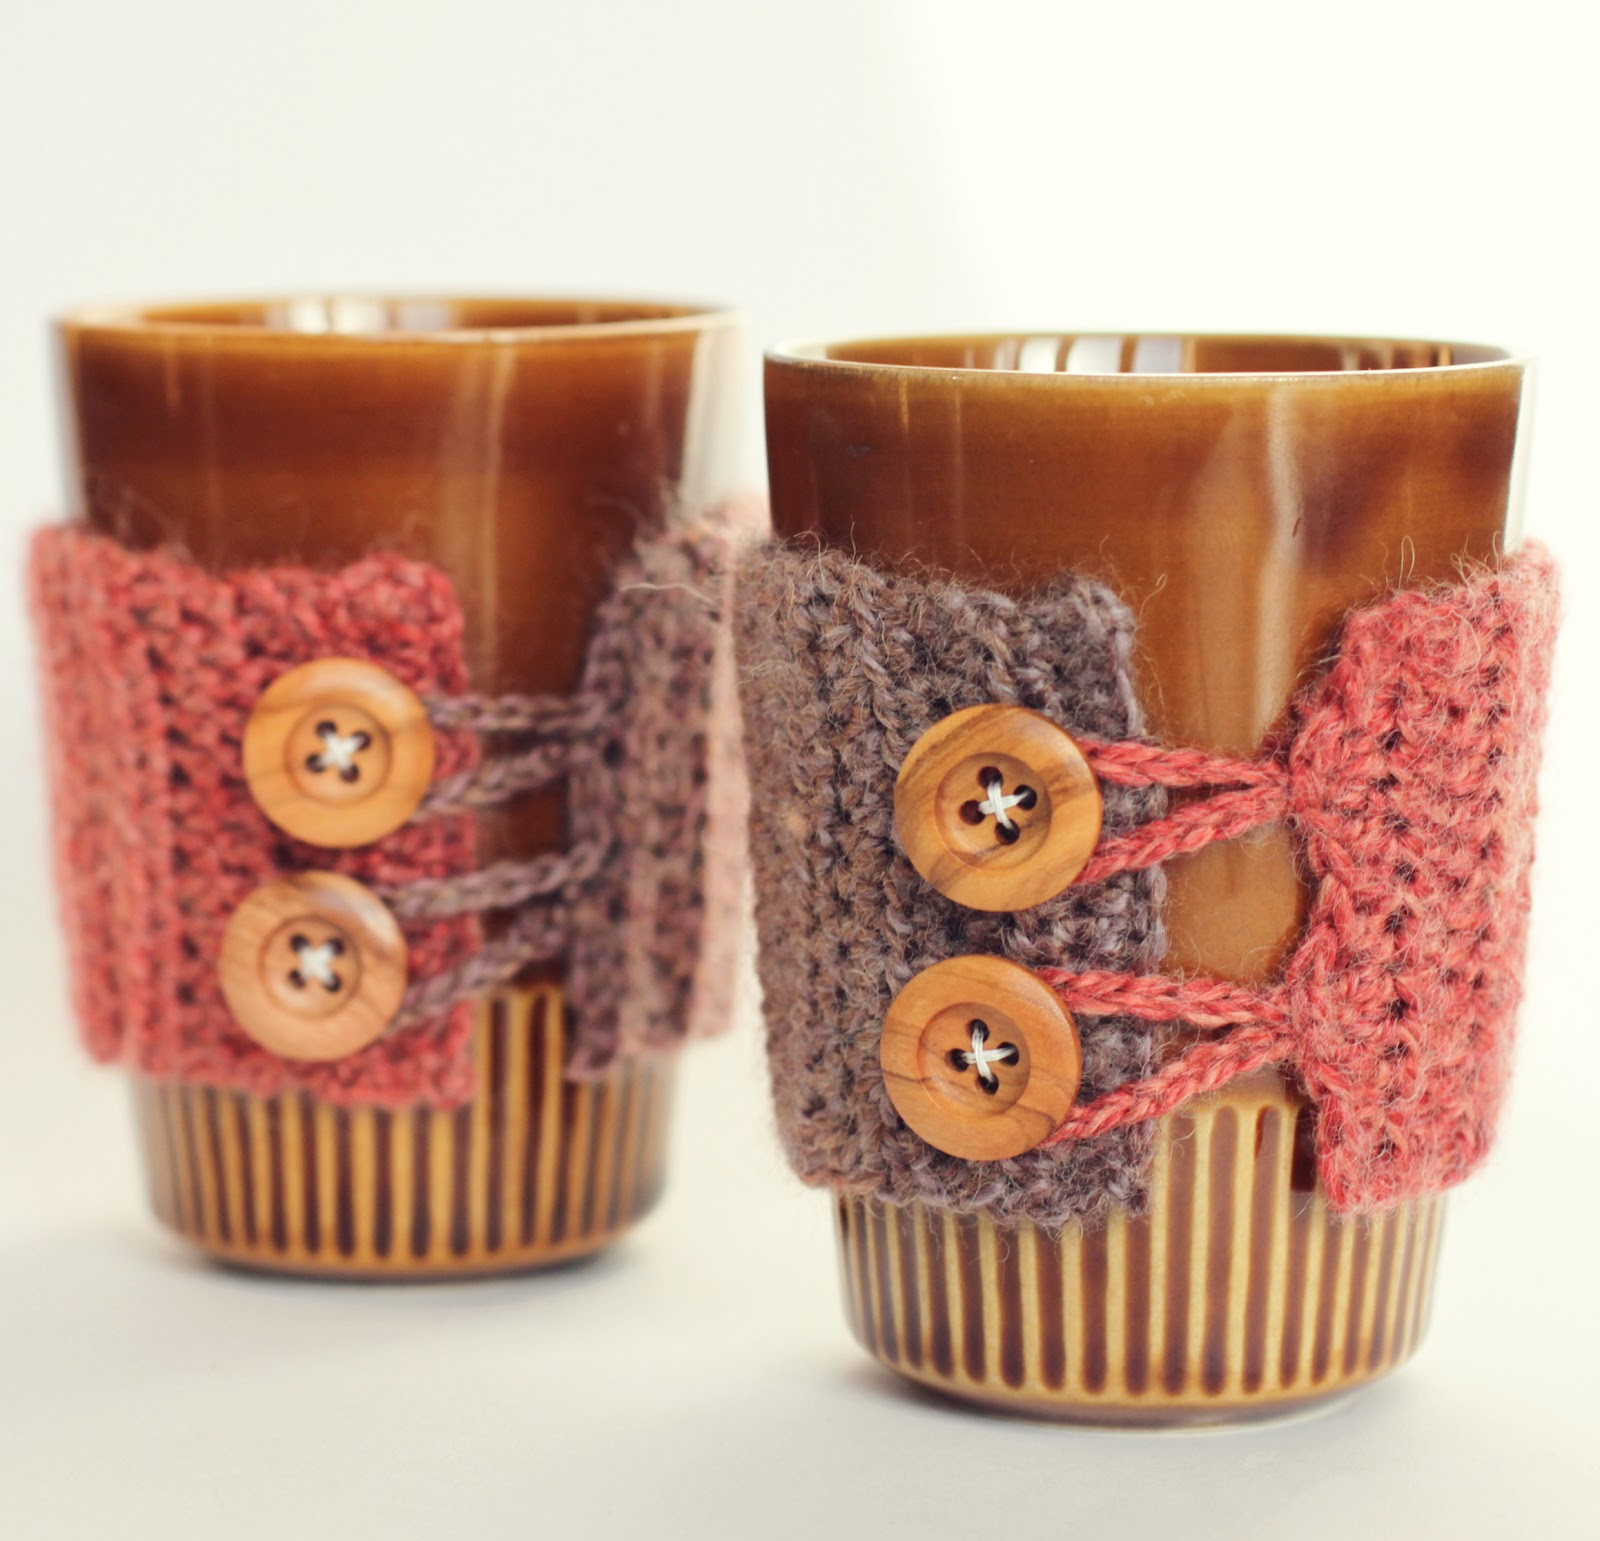 Crochet Coffee Cup Cozy Lovely L♥valizious Mug Cozy Tutorial Of Crochet Coffee Cup Cozy Fresh Creativity Awaits Crochet Coffee Cozy Patterns Stitch